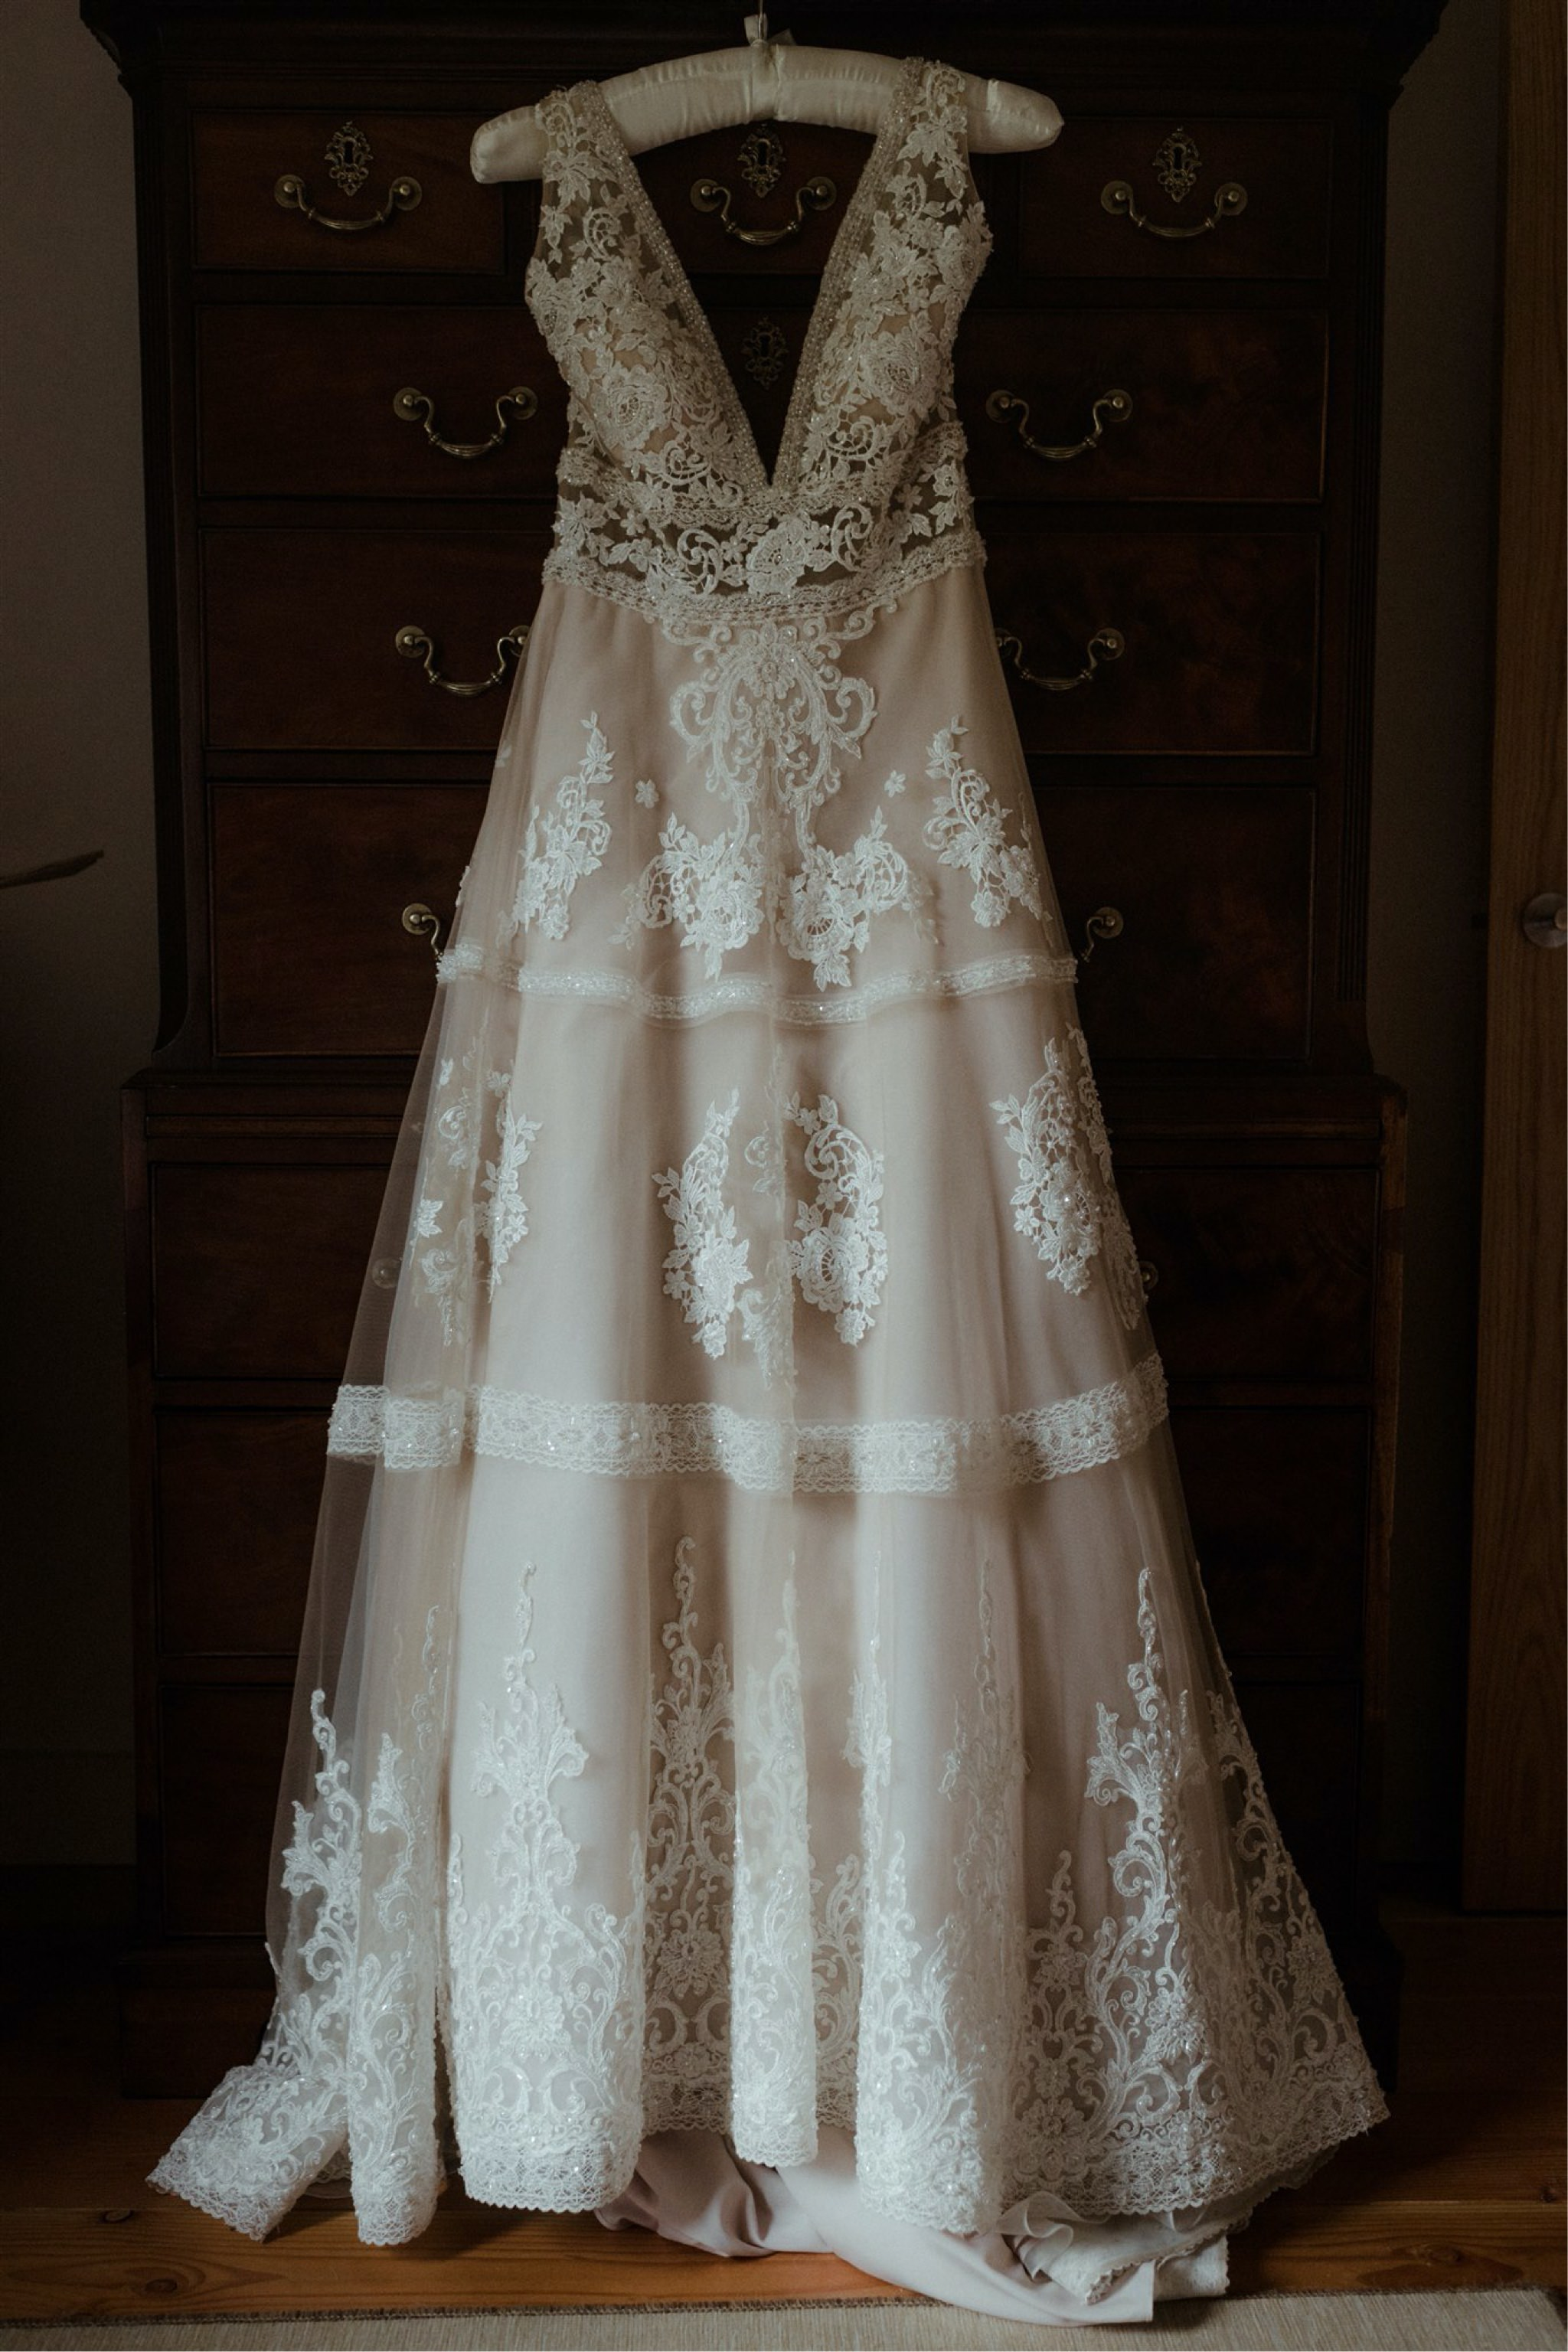 Wedding dress hanging in a bedroom for a Scottish elopement